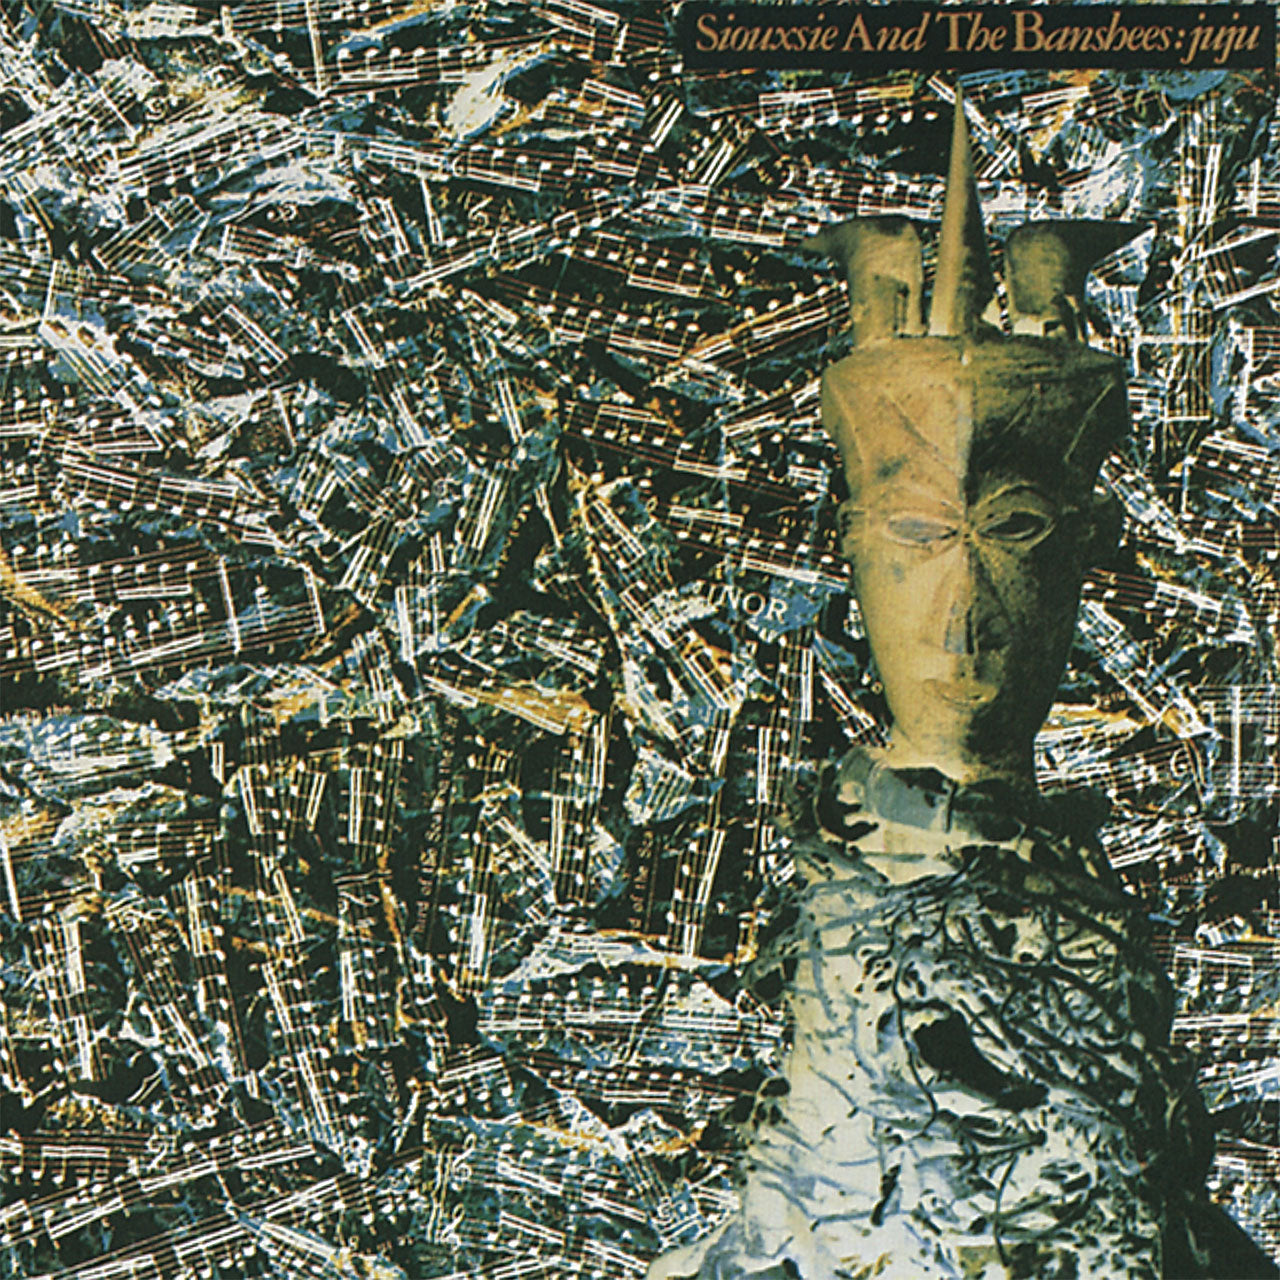 Siouxsie and the Banshees - Juju (CD)